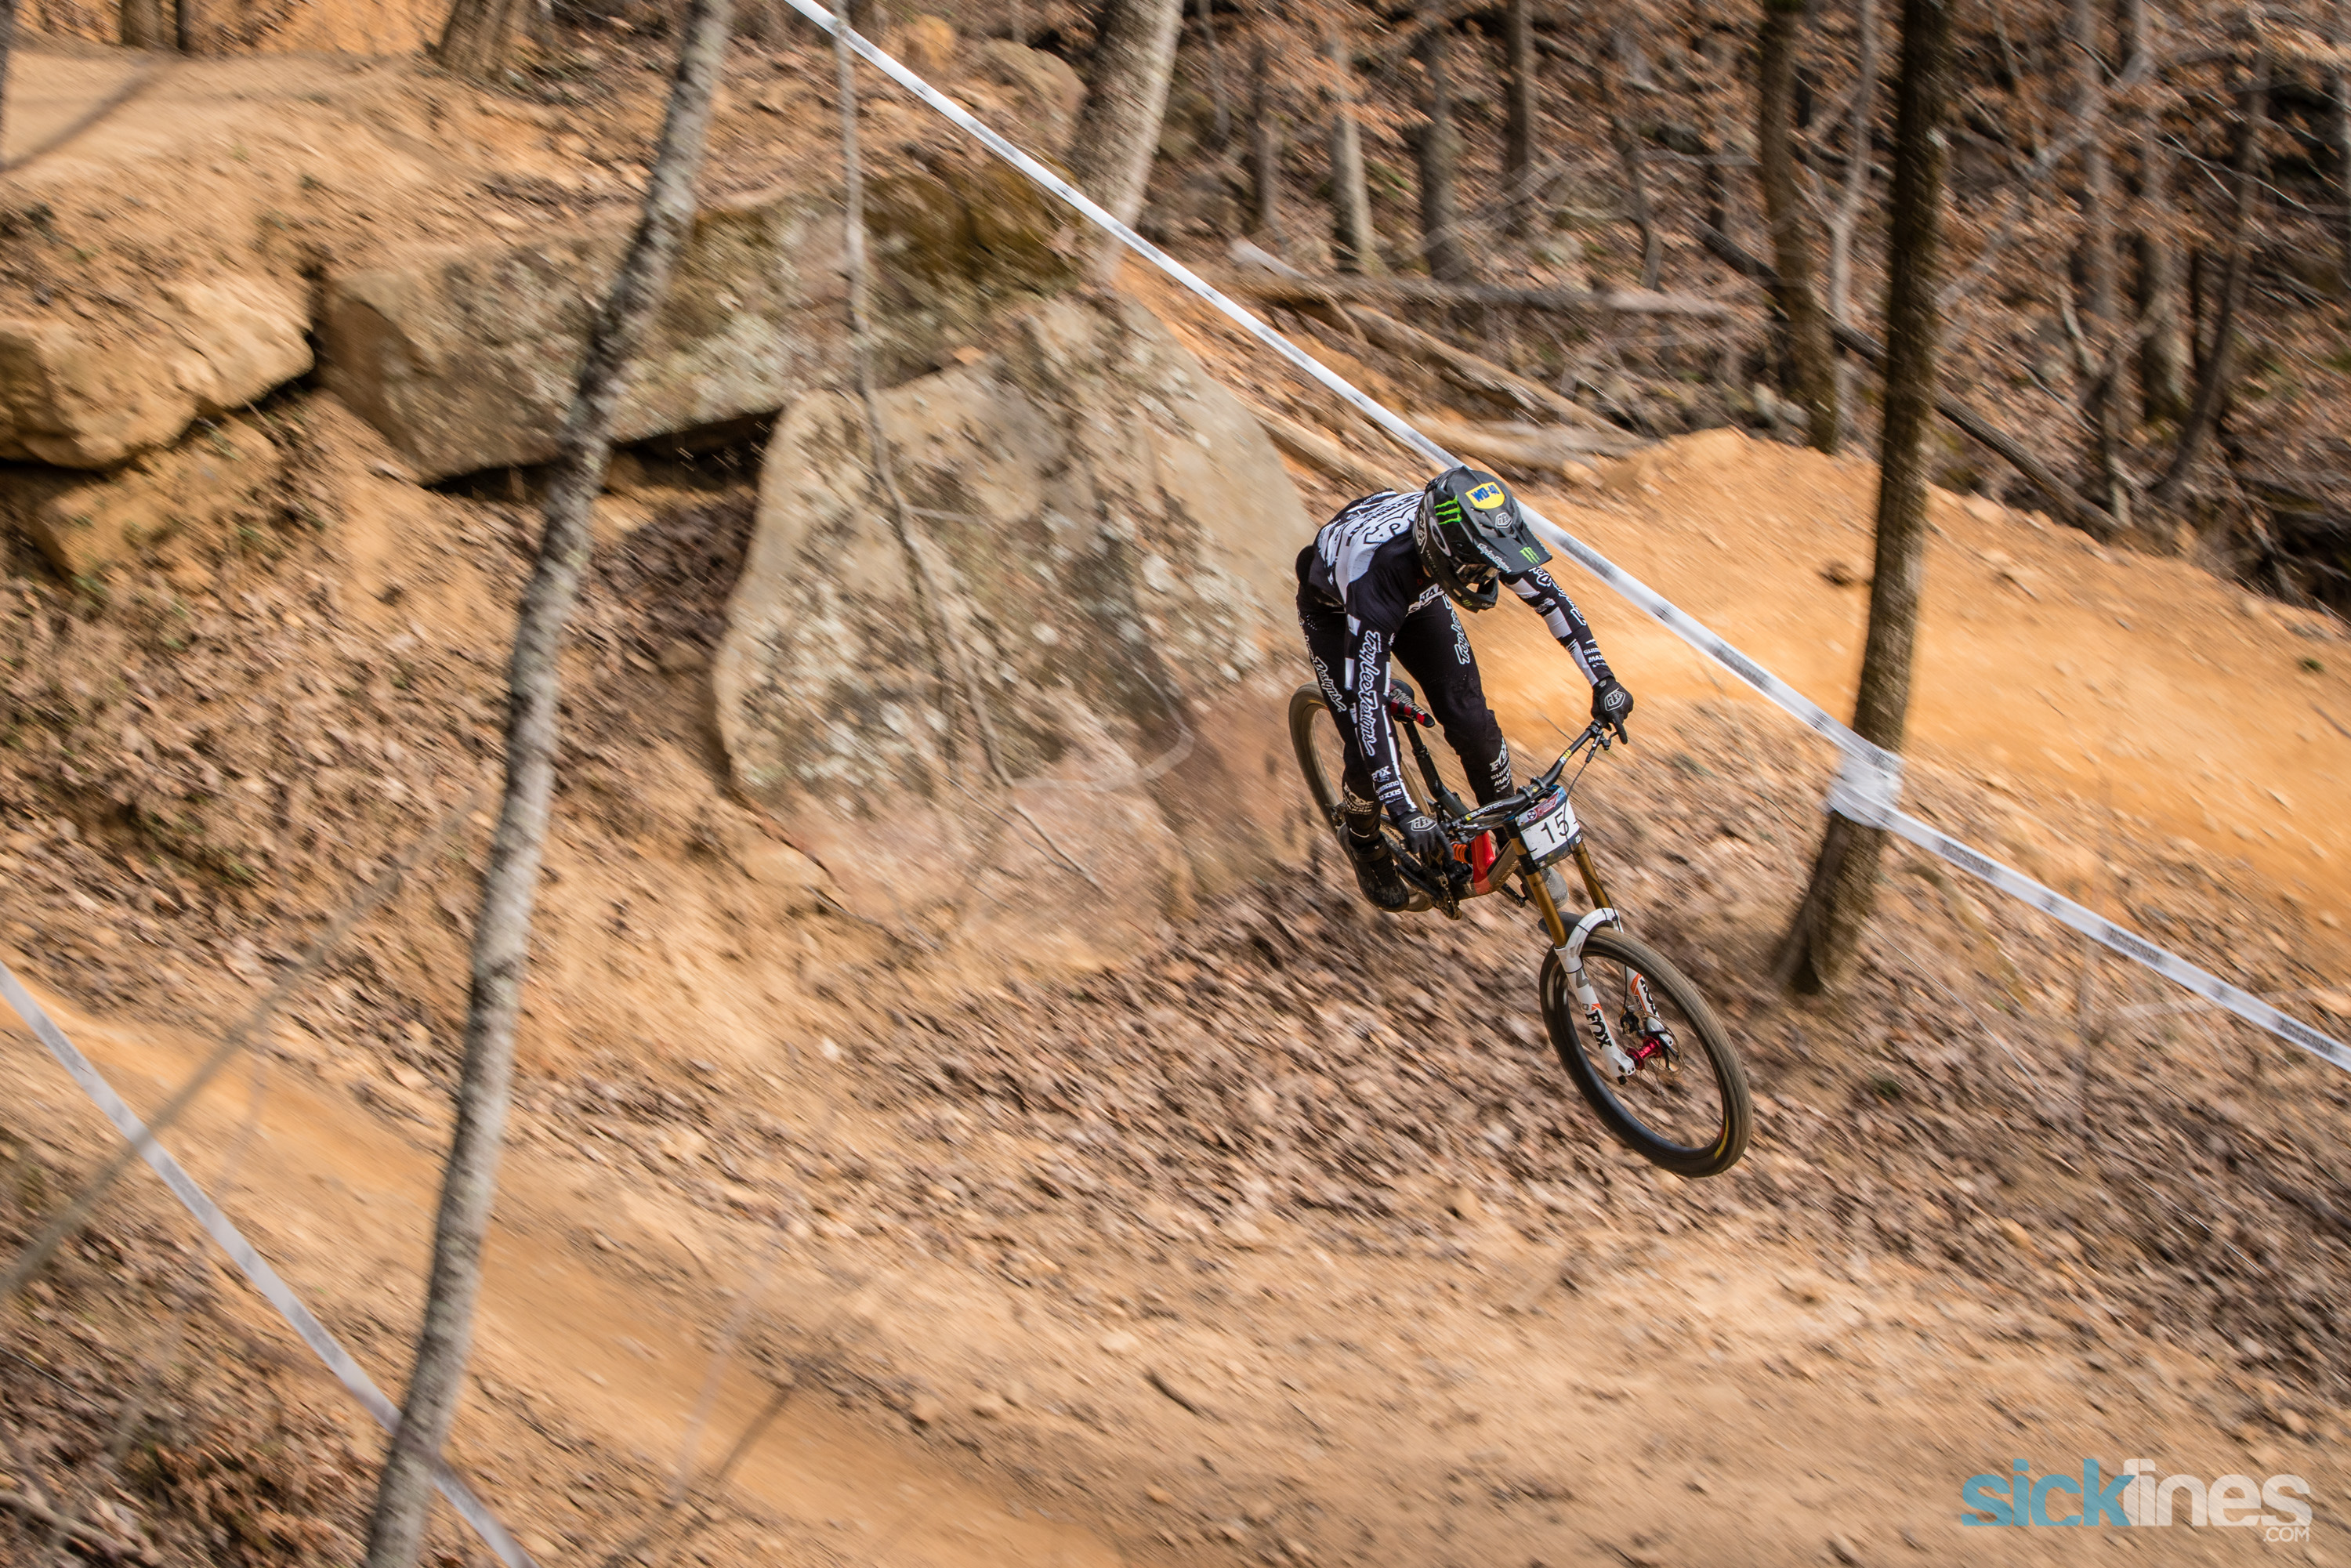 Seeding Results Tennessee National Windrock U.S. National Downhill Series, Seeding Results U.S. National DH Windrock – Tennessee National